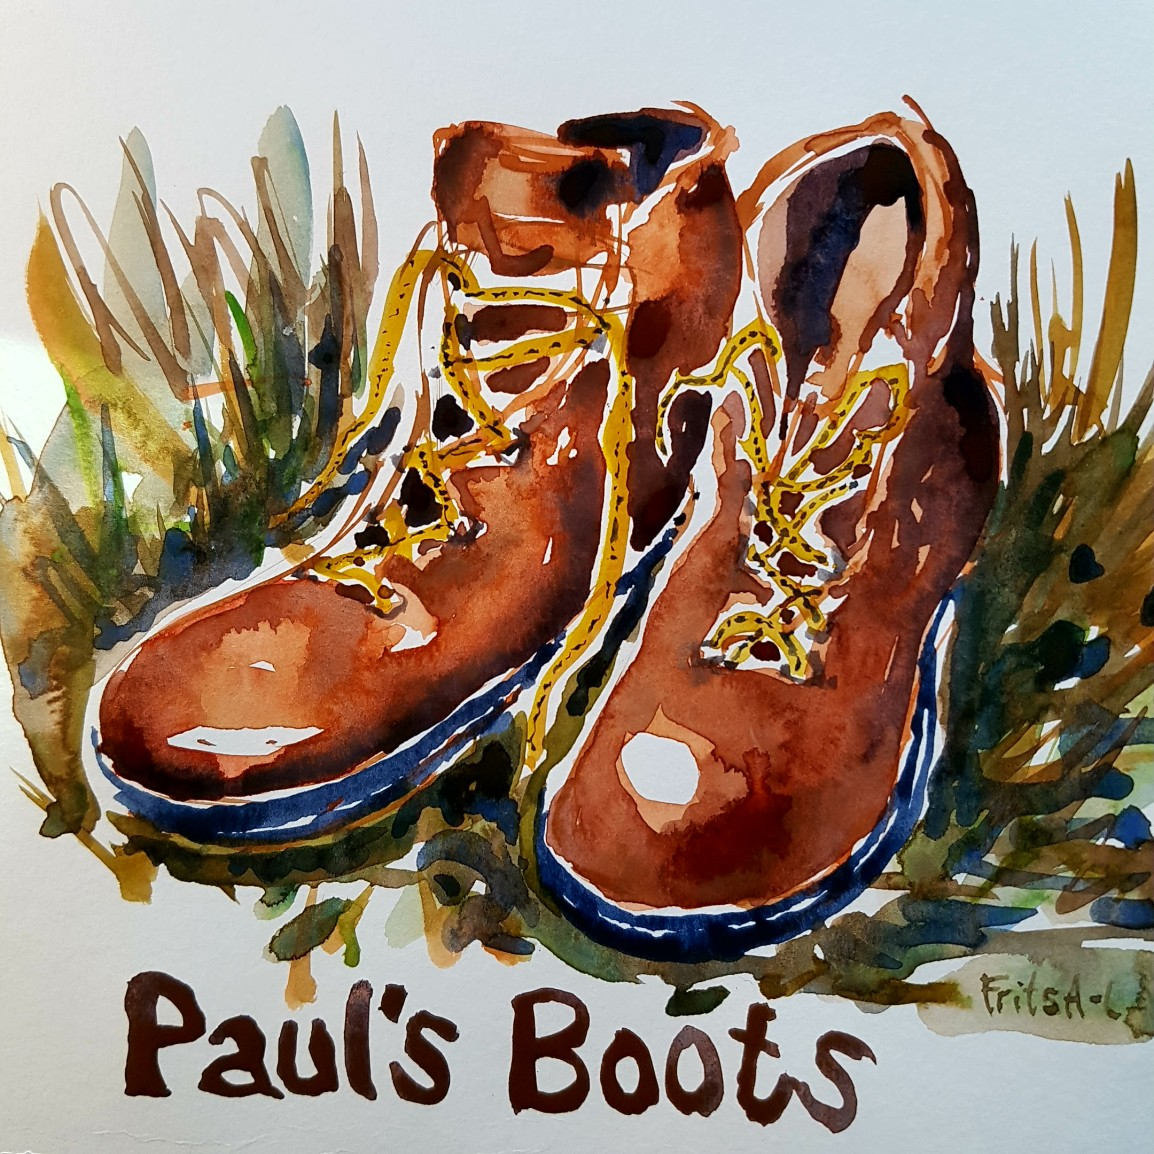 Paul's boots walks on